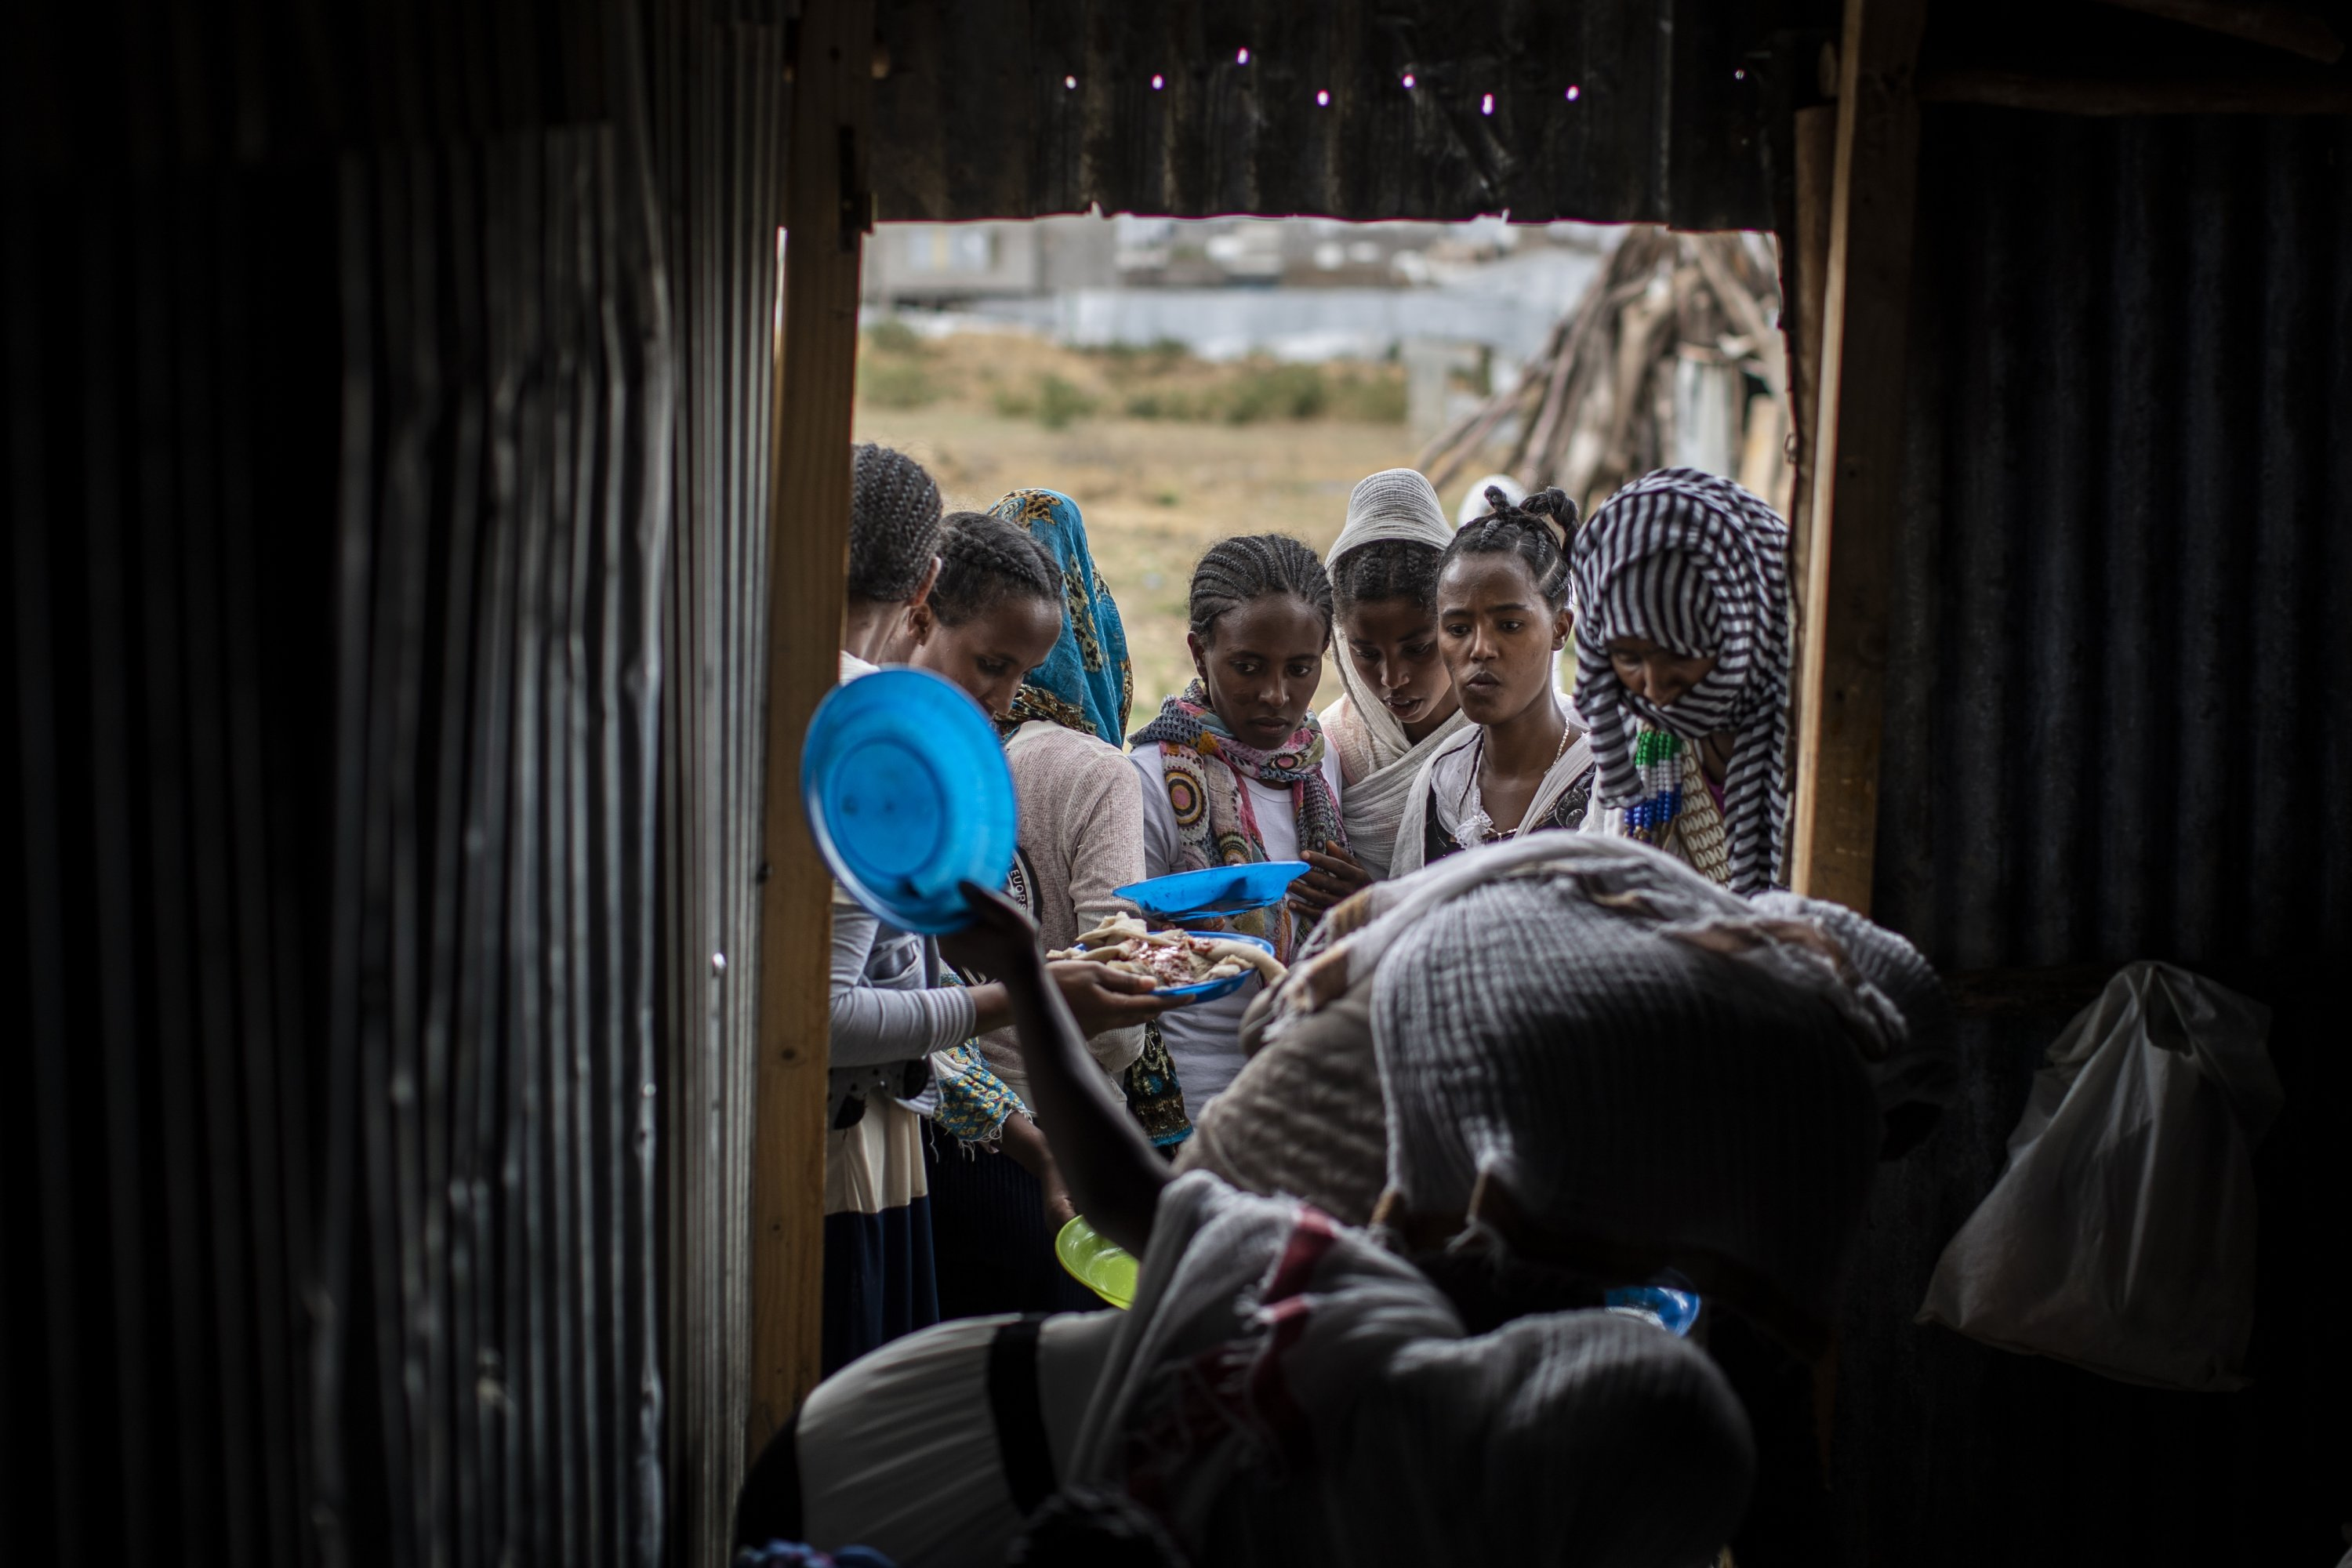 Tigrayans stand in line to receive food donated by local residents at a reception center for the internally displaced in Mekele, in the Tigray region of northern Ethiopia, May 9, 2021. (AP Photo)